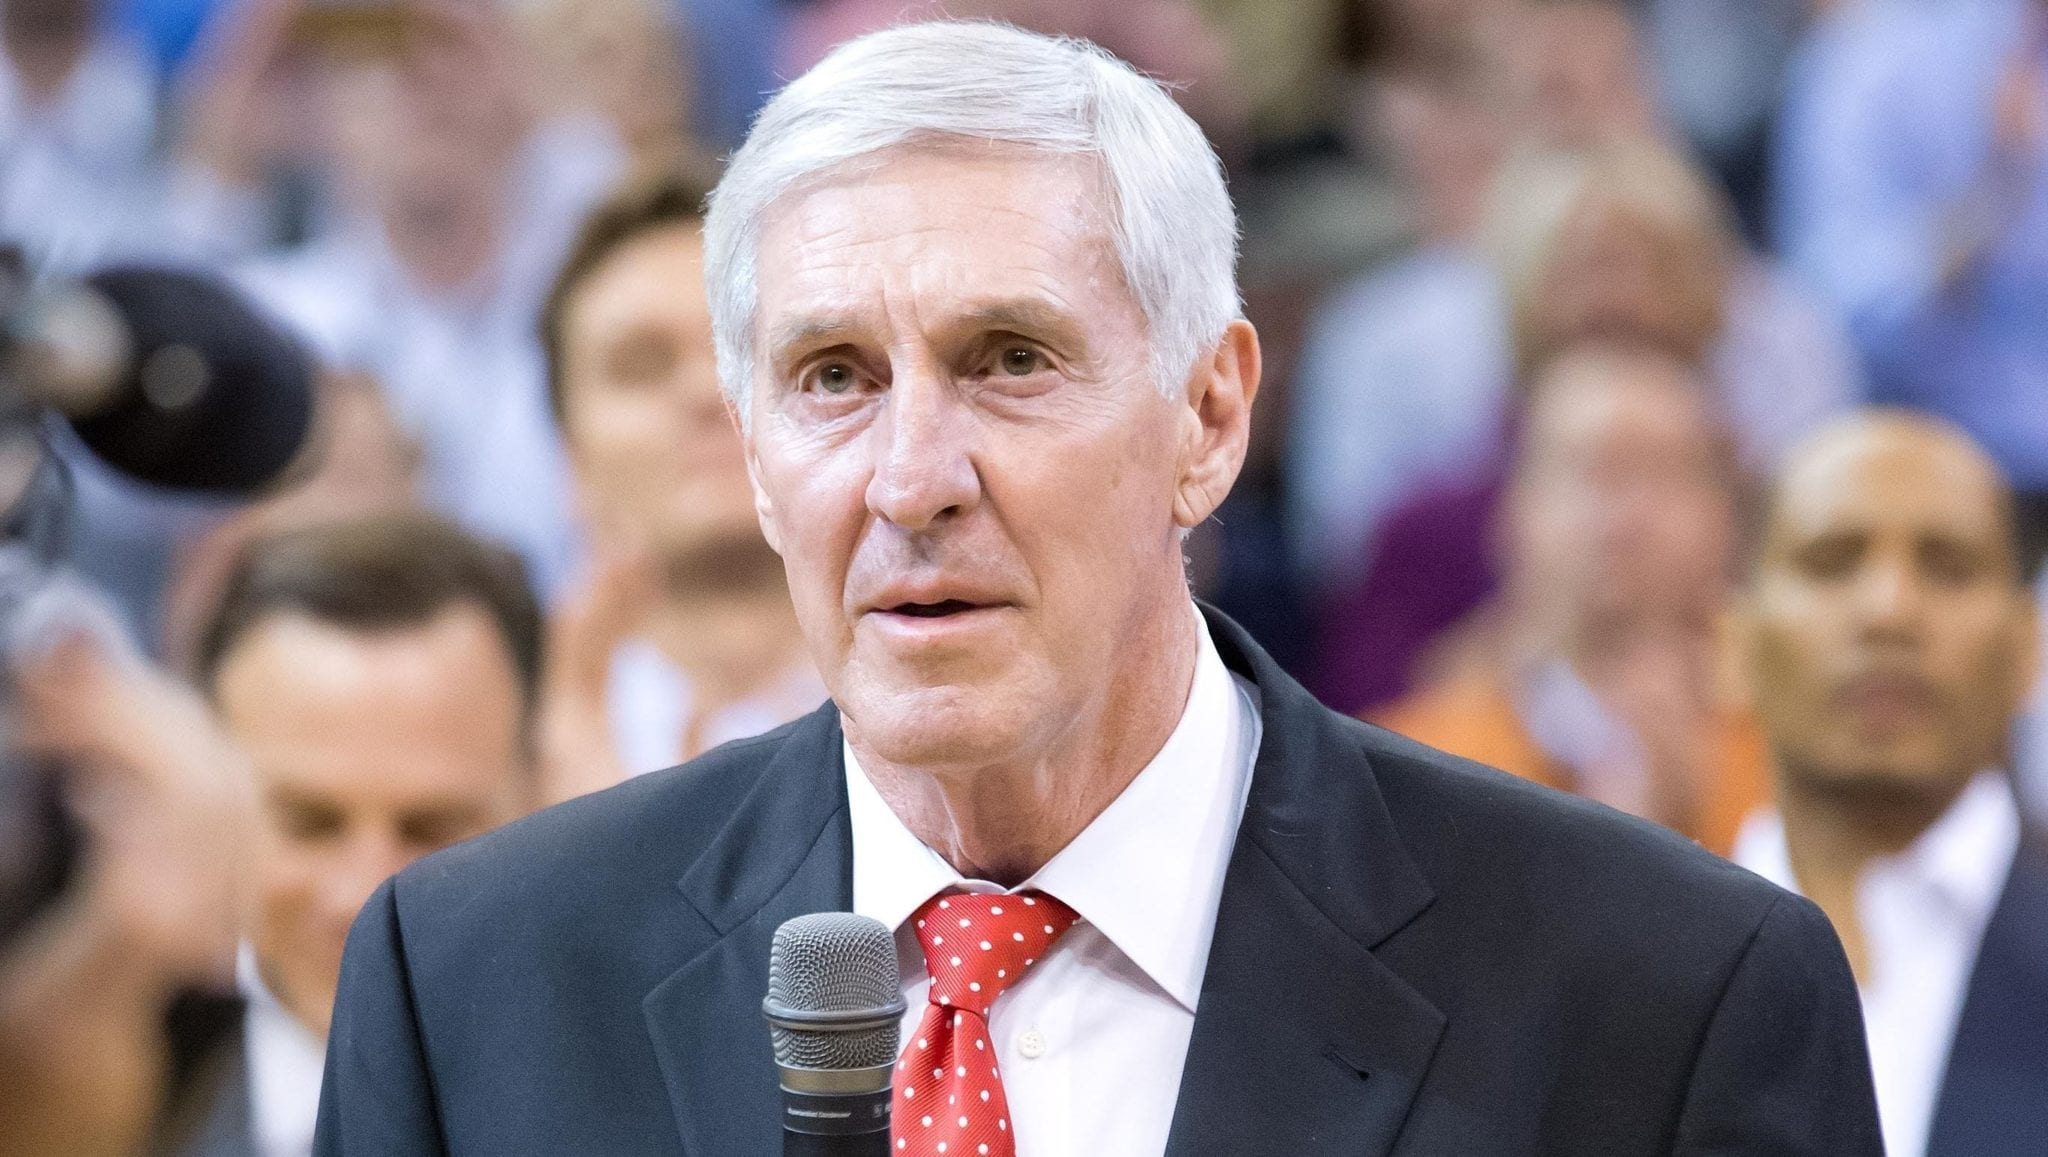 Hall of Fame Jazz Coach Jerry Sloan Dies Age 78